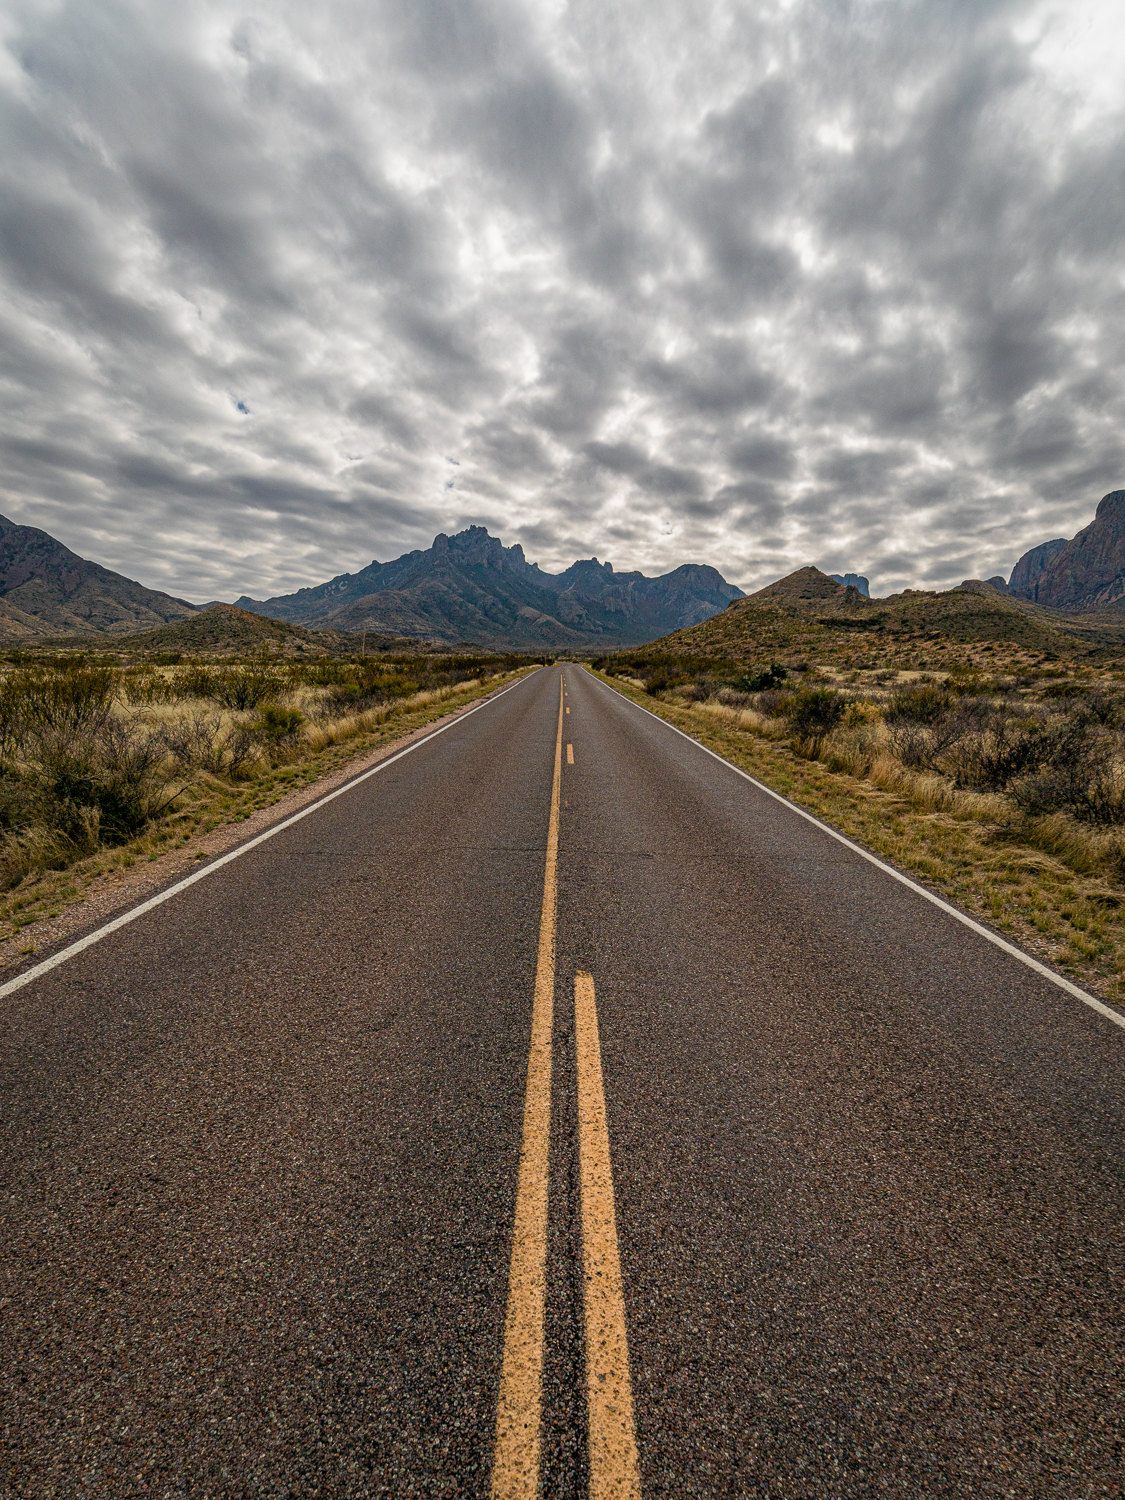 On The Road to The Chisos